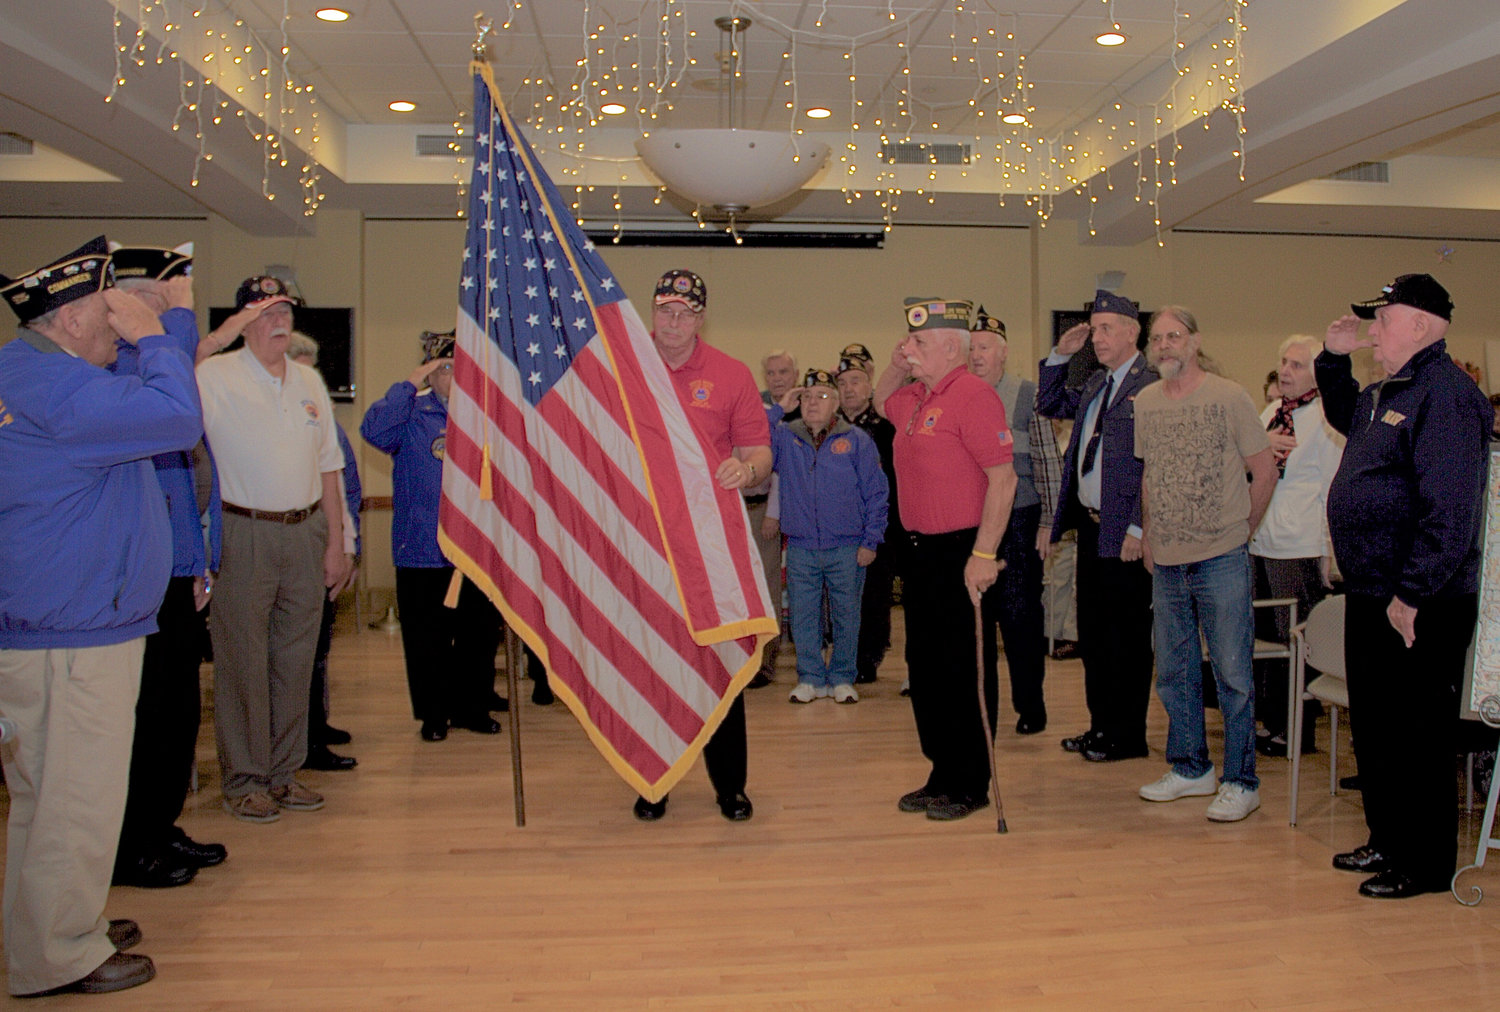 Members of Oyster Bay's American Legion, Veterans of Foreign Wars and American Veterans Association gathered at the Life Enrichment Center for a Veterans Day celebration.